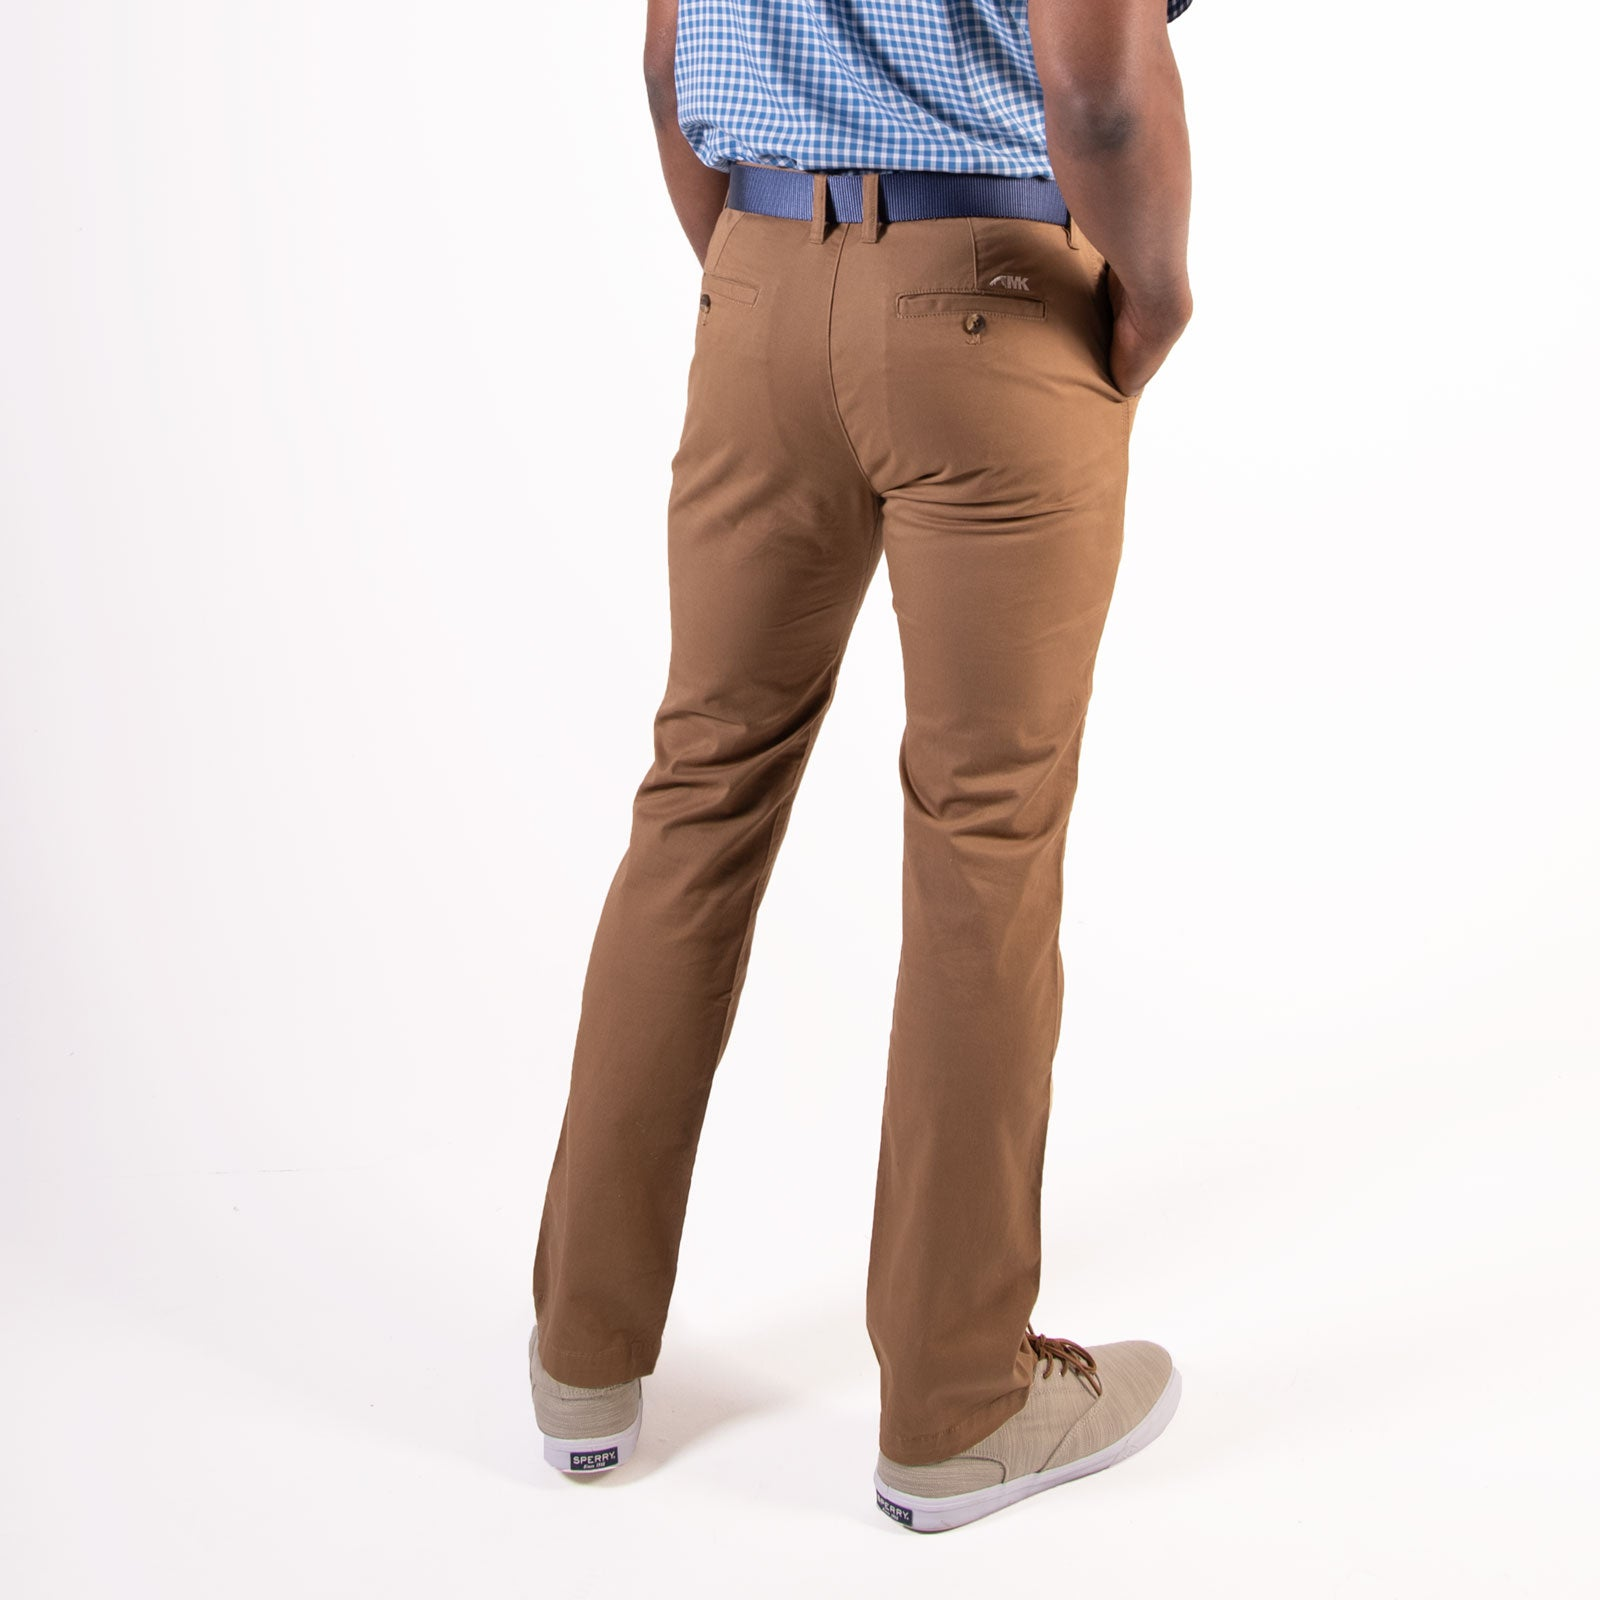 Mountain Khakis Men's Slim Tailored Pants Guide